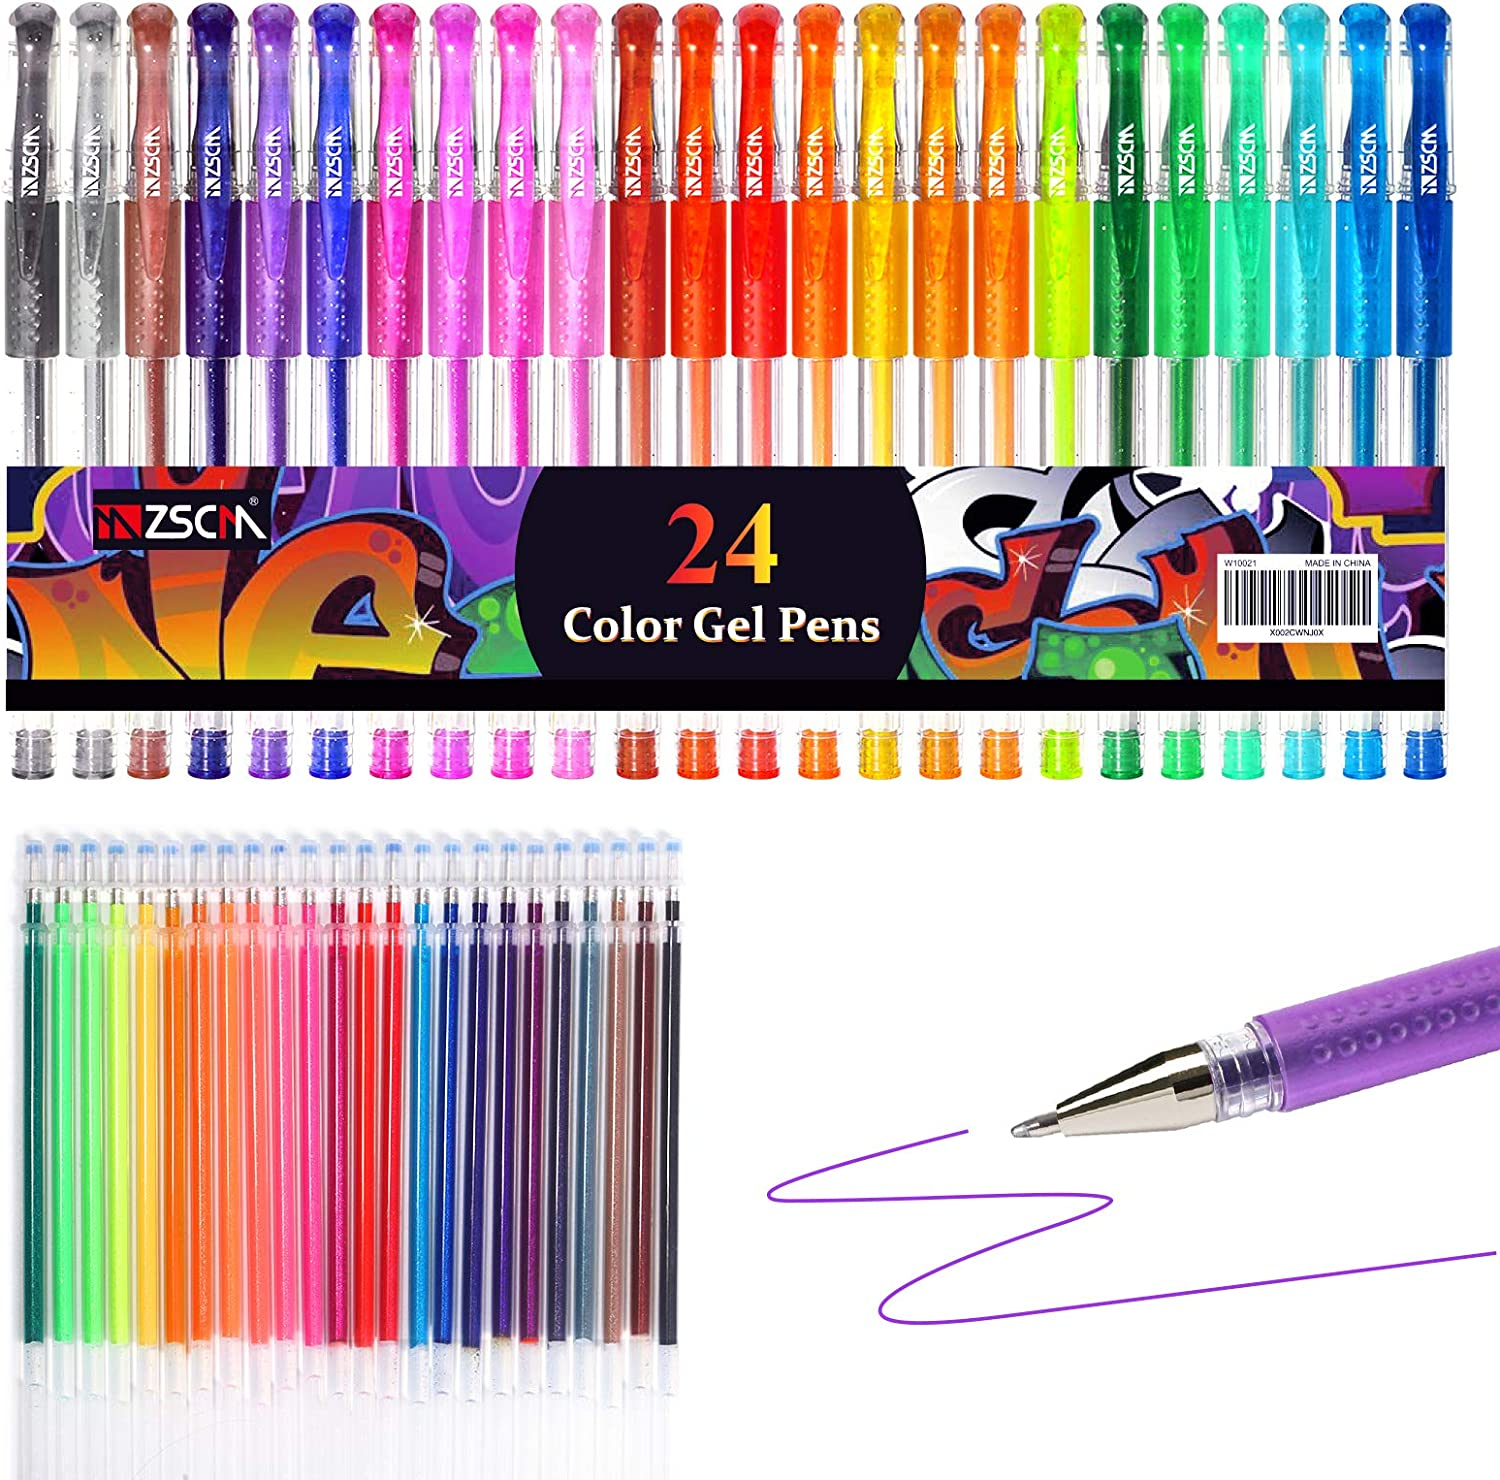 Glitter Gel Pens Excellent ZSCM 48 Pack Colored San Jose Mall 24 Co Include Set